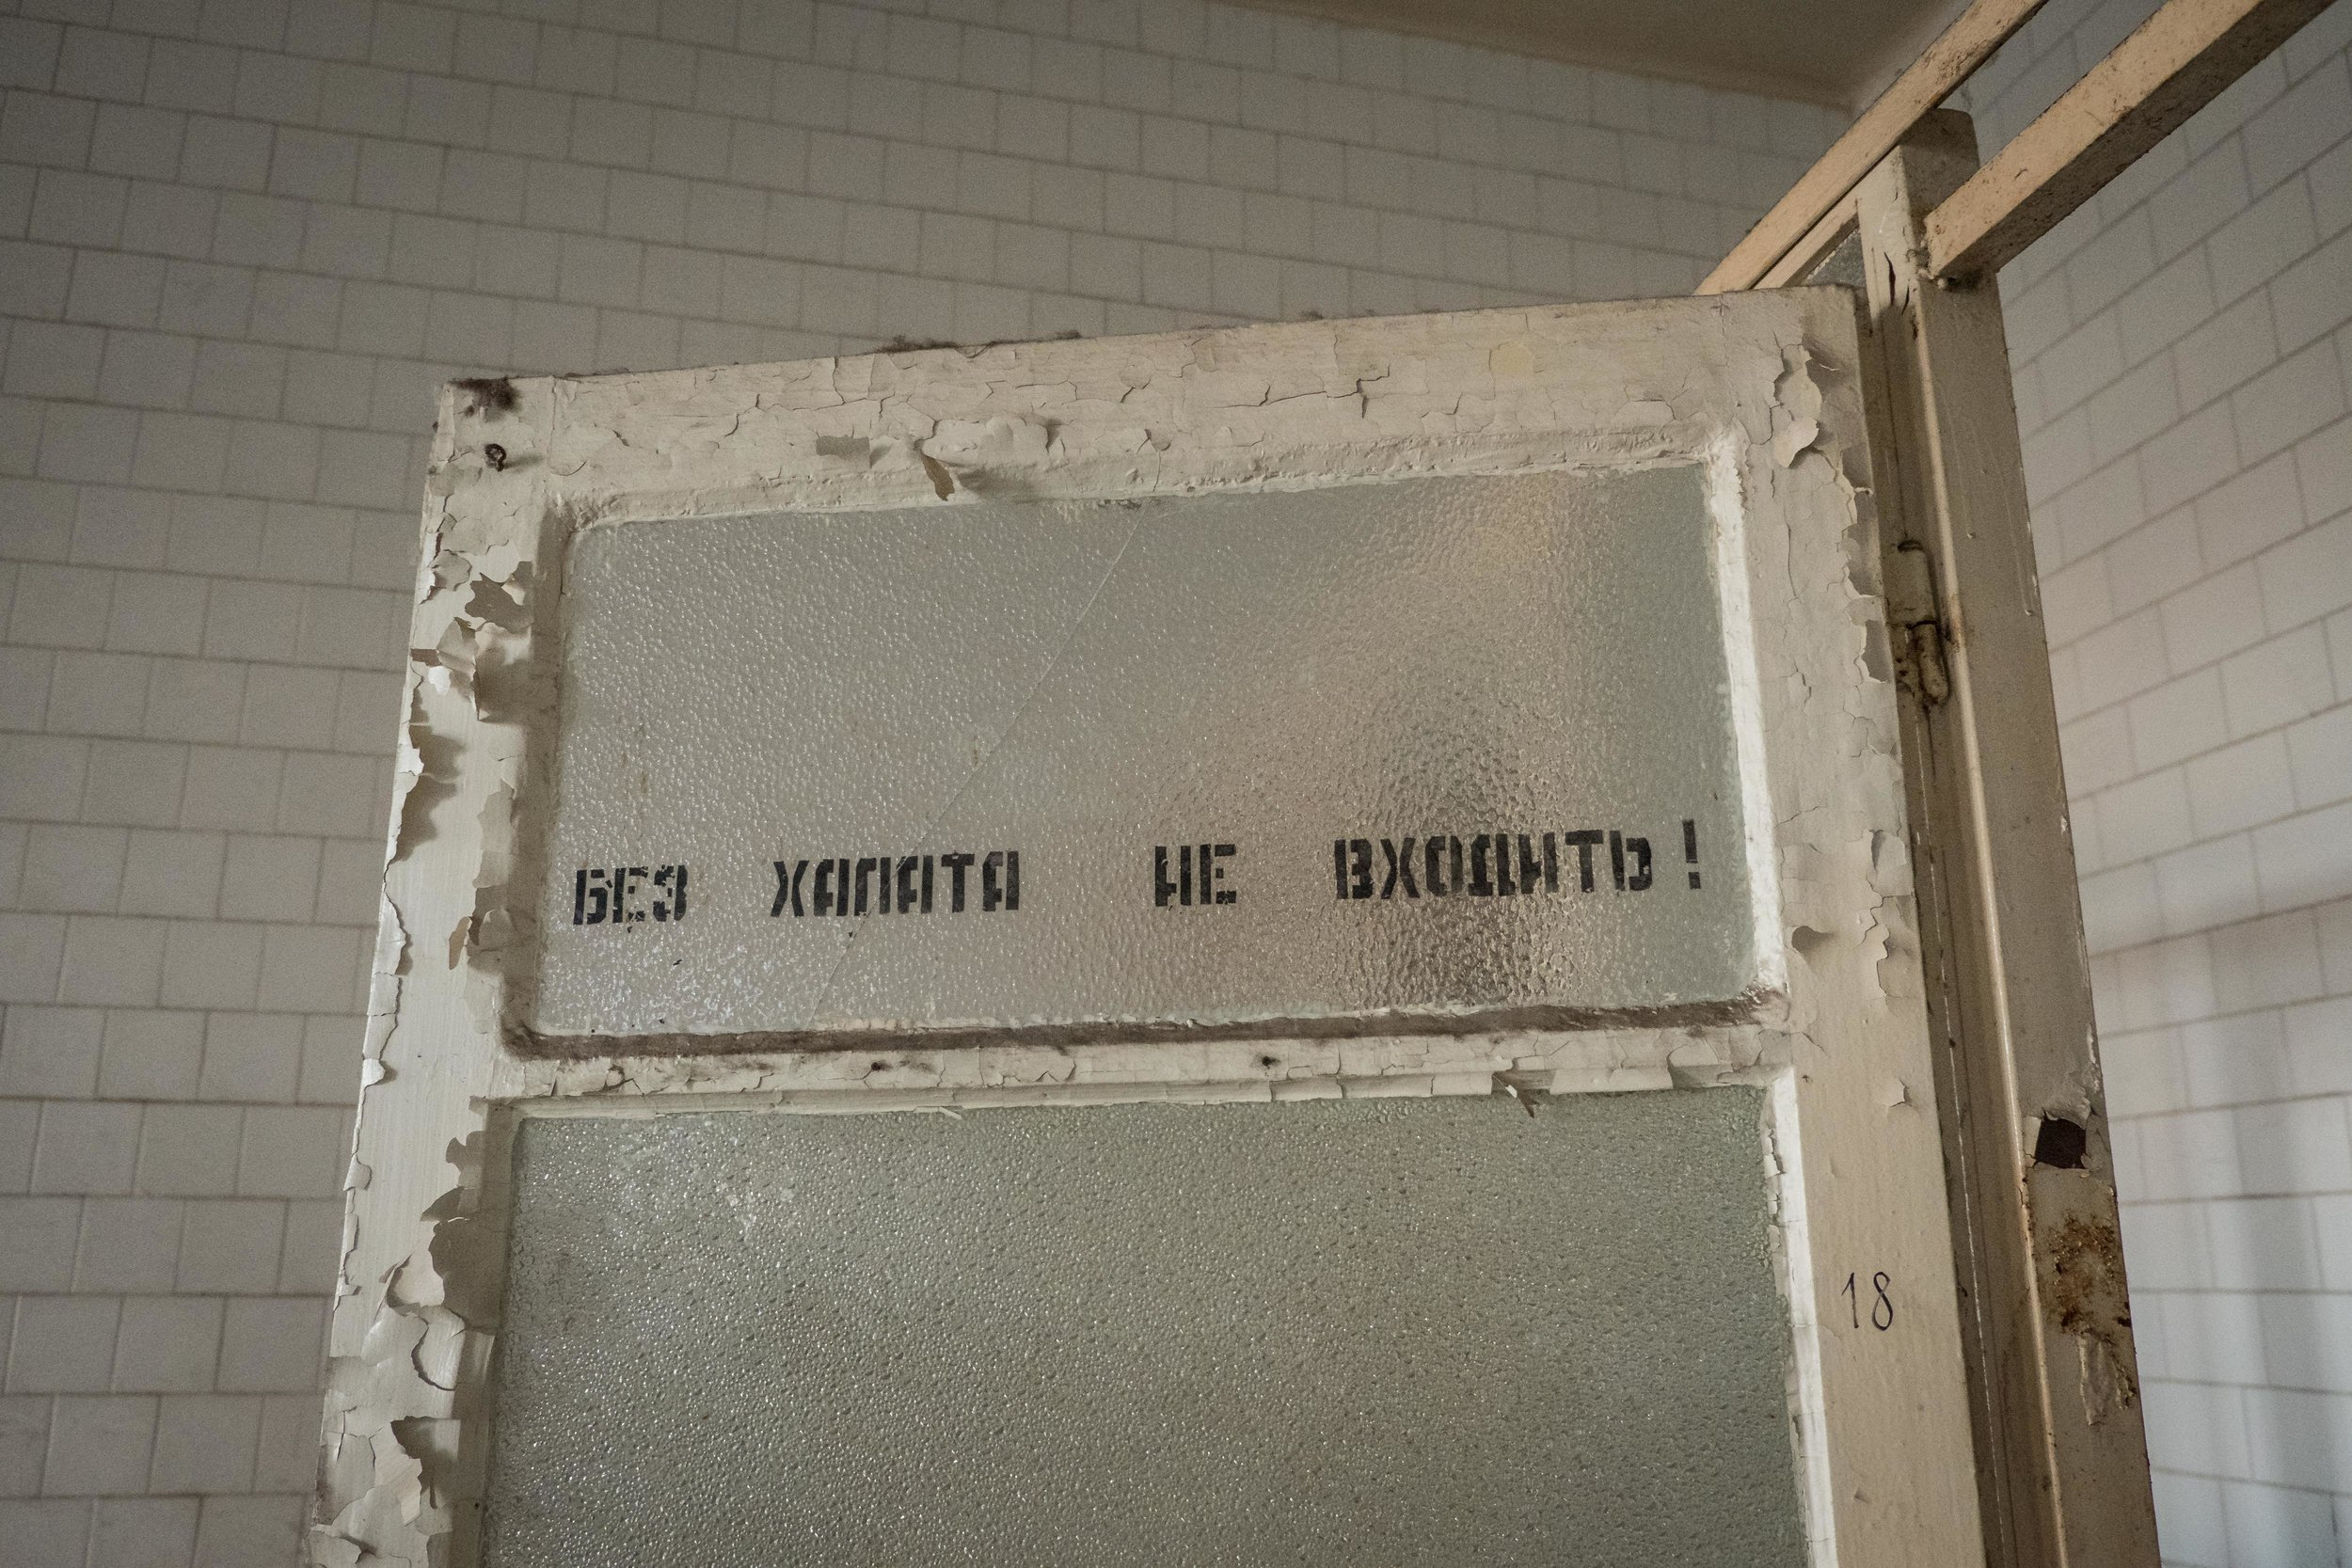 a stern reminder in Russian about wearing a doctor's coat